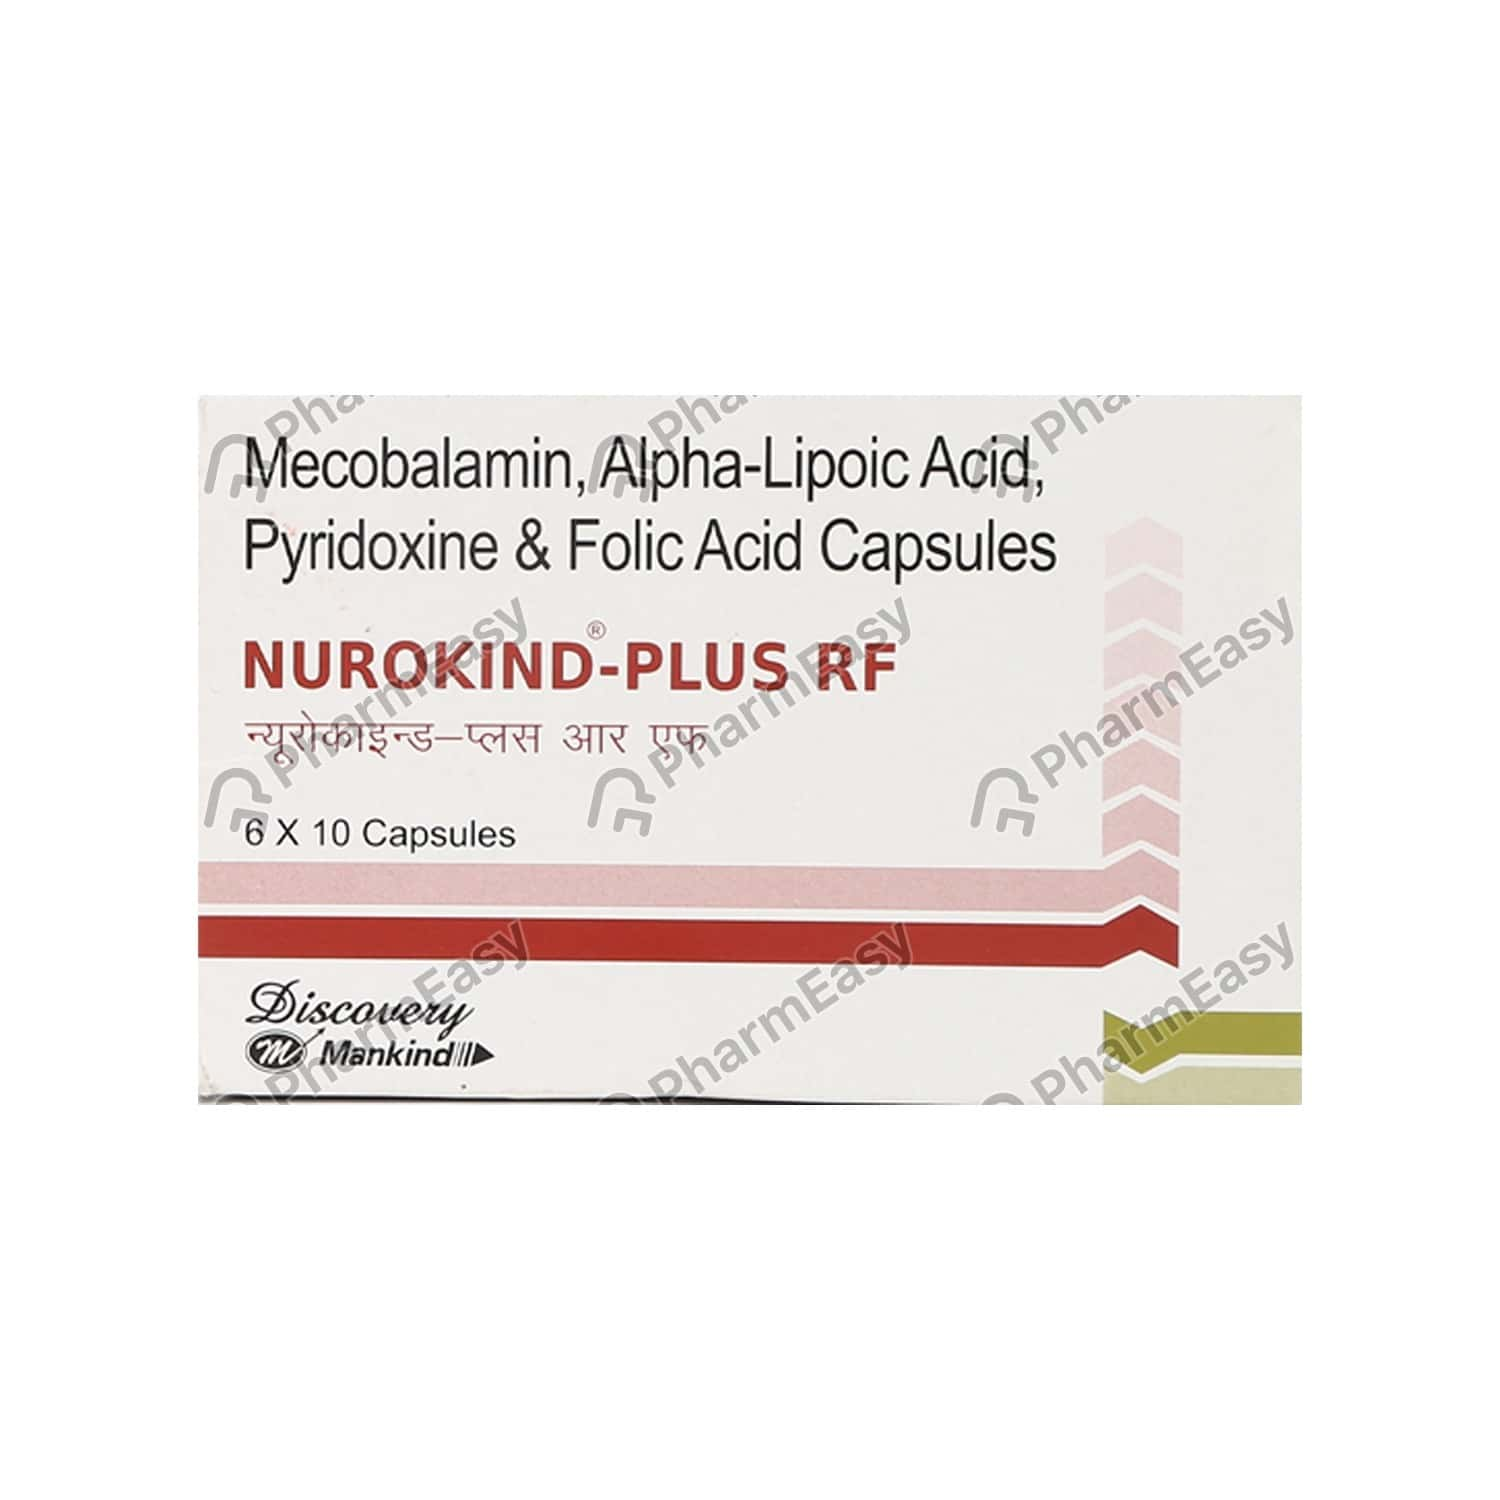 Nurokind Plus Rf Strip Of 10 Capsules